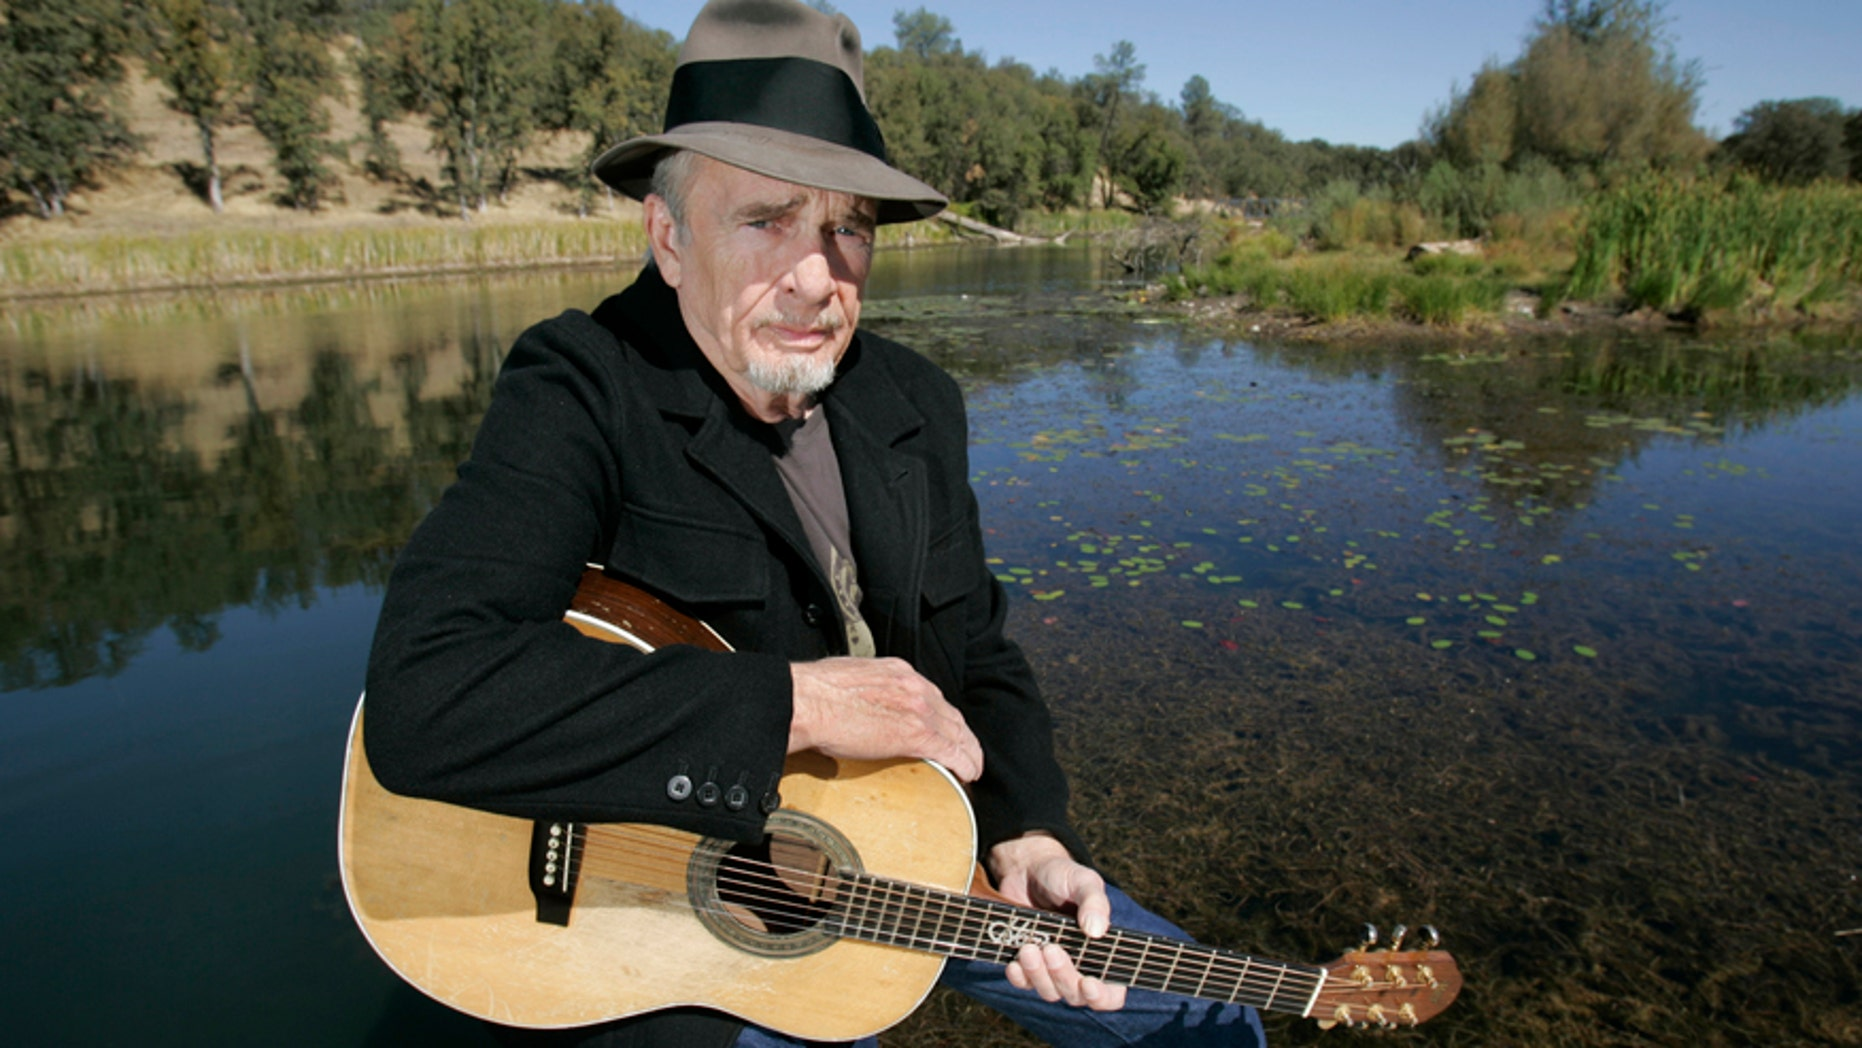 In this Oct. 2, 2007 file photo, Merle Haggard poses for a photo at his ranch at Palo Cedro, Calif. Haggard will be honored a year after his death with an all-star concert featuring his longtime friend and duet partner Willie Nelson as well as Kenny Chesney, Miranda Lambert and John Mellencamp. The country music star died of pneumonia on April 6, 2016, in Palo Cedro. He was 79.